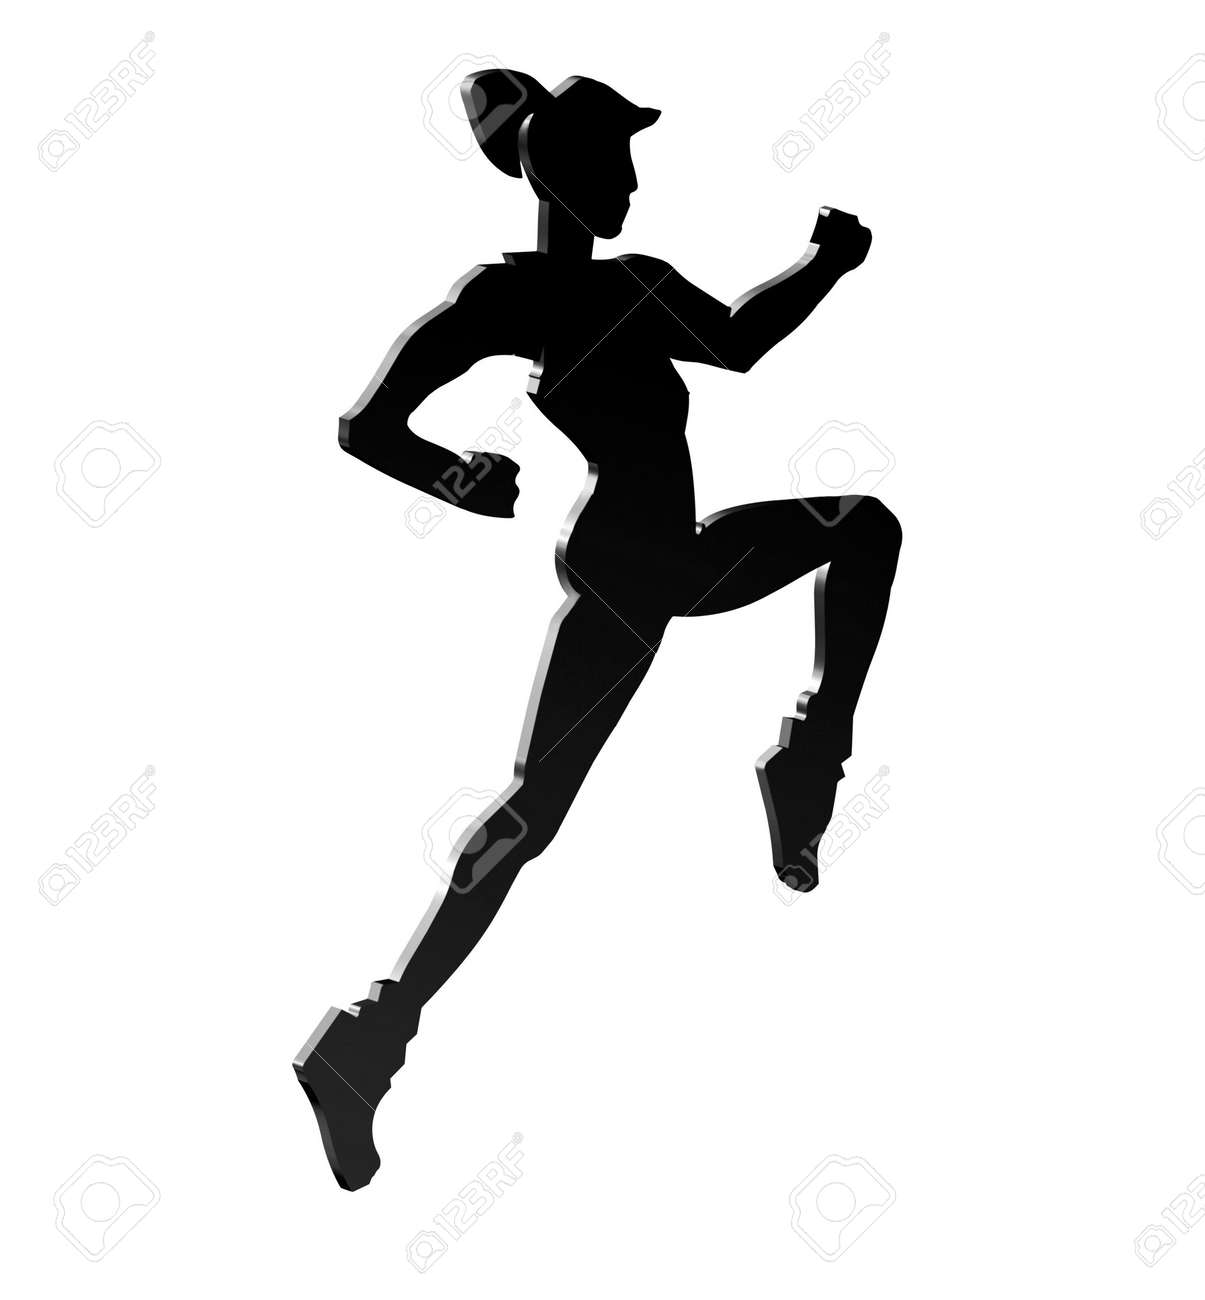 Silhouette of a female running to keep fit Stock Photo - 2496906